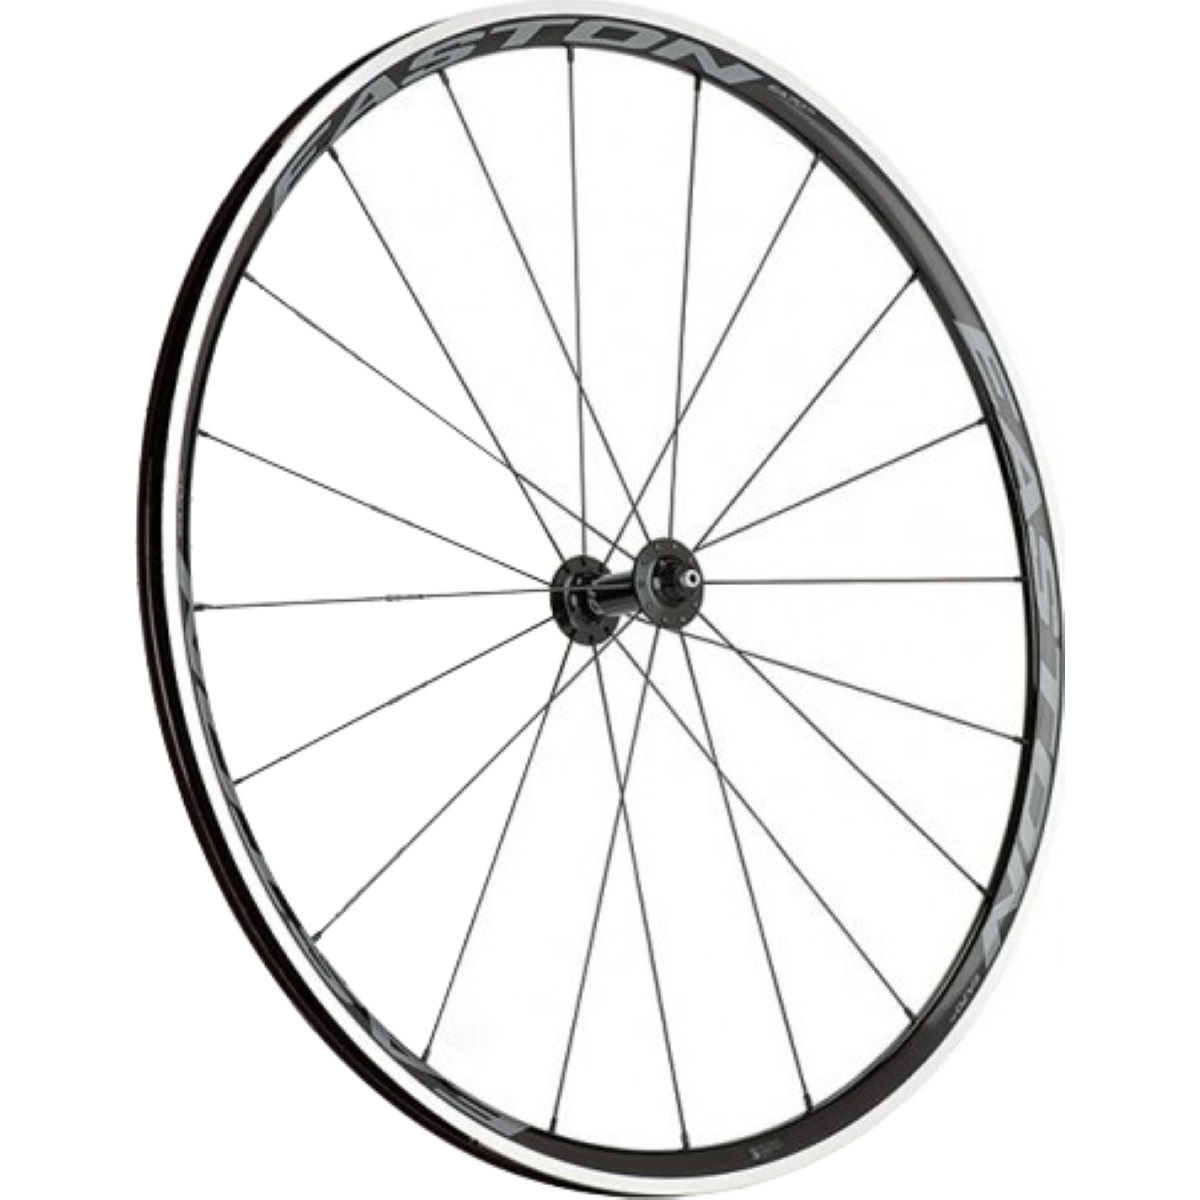 Roue avant Easton EA 70 SL (alliage, route) - 700c Noir Roues performance